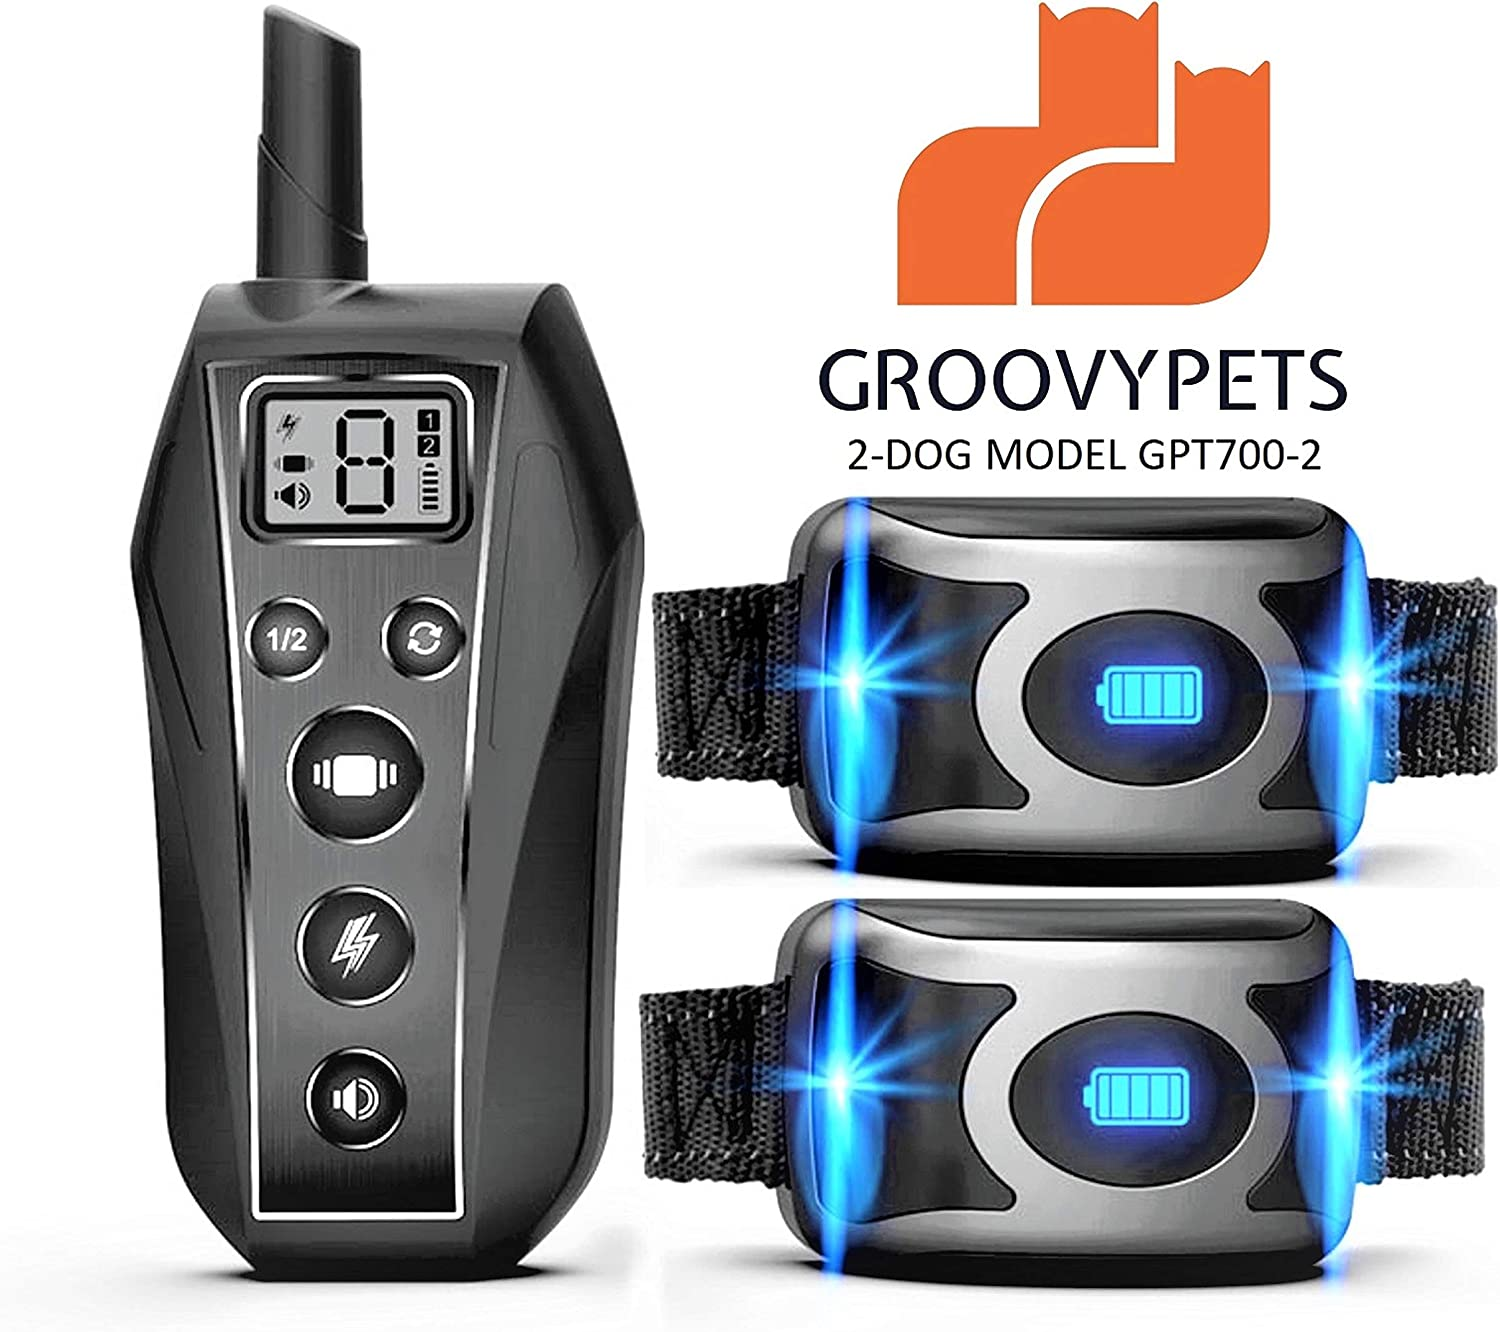 GROOVYPETS 650 Yard Remote Dog Training Shock Collar w Safe Humane Beep, Vibration and Shock Waterproof 40 Days of Battery Life for Small Medium Large Dog